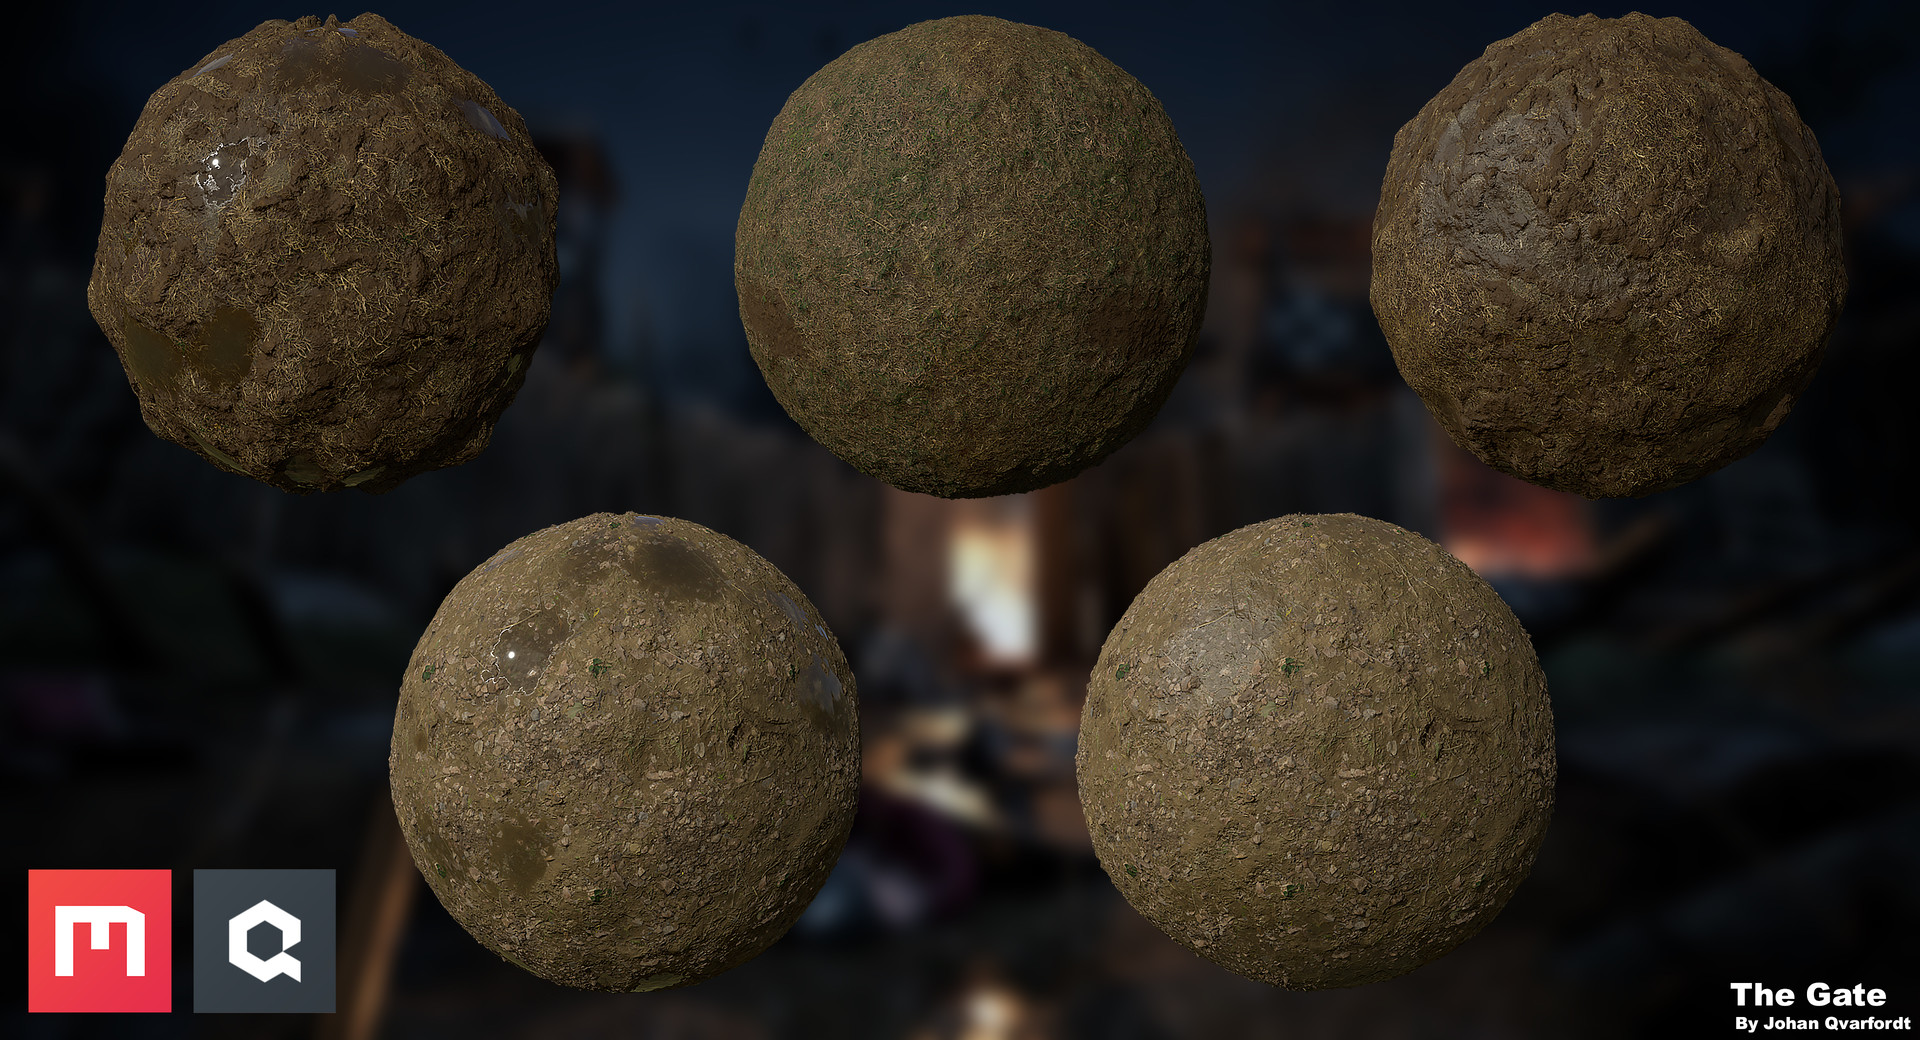 During this project I decided to try out the new Quixel Mixer, and it turned out to be a very promising software with the excellent material library of megascans. It's a very fast and effective way to create all kinds of materials that you could think of.